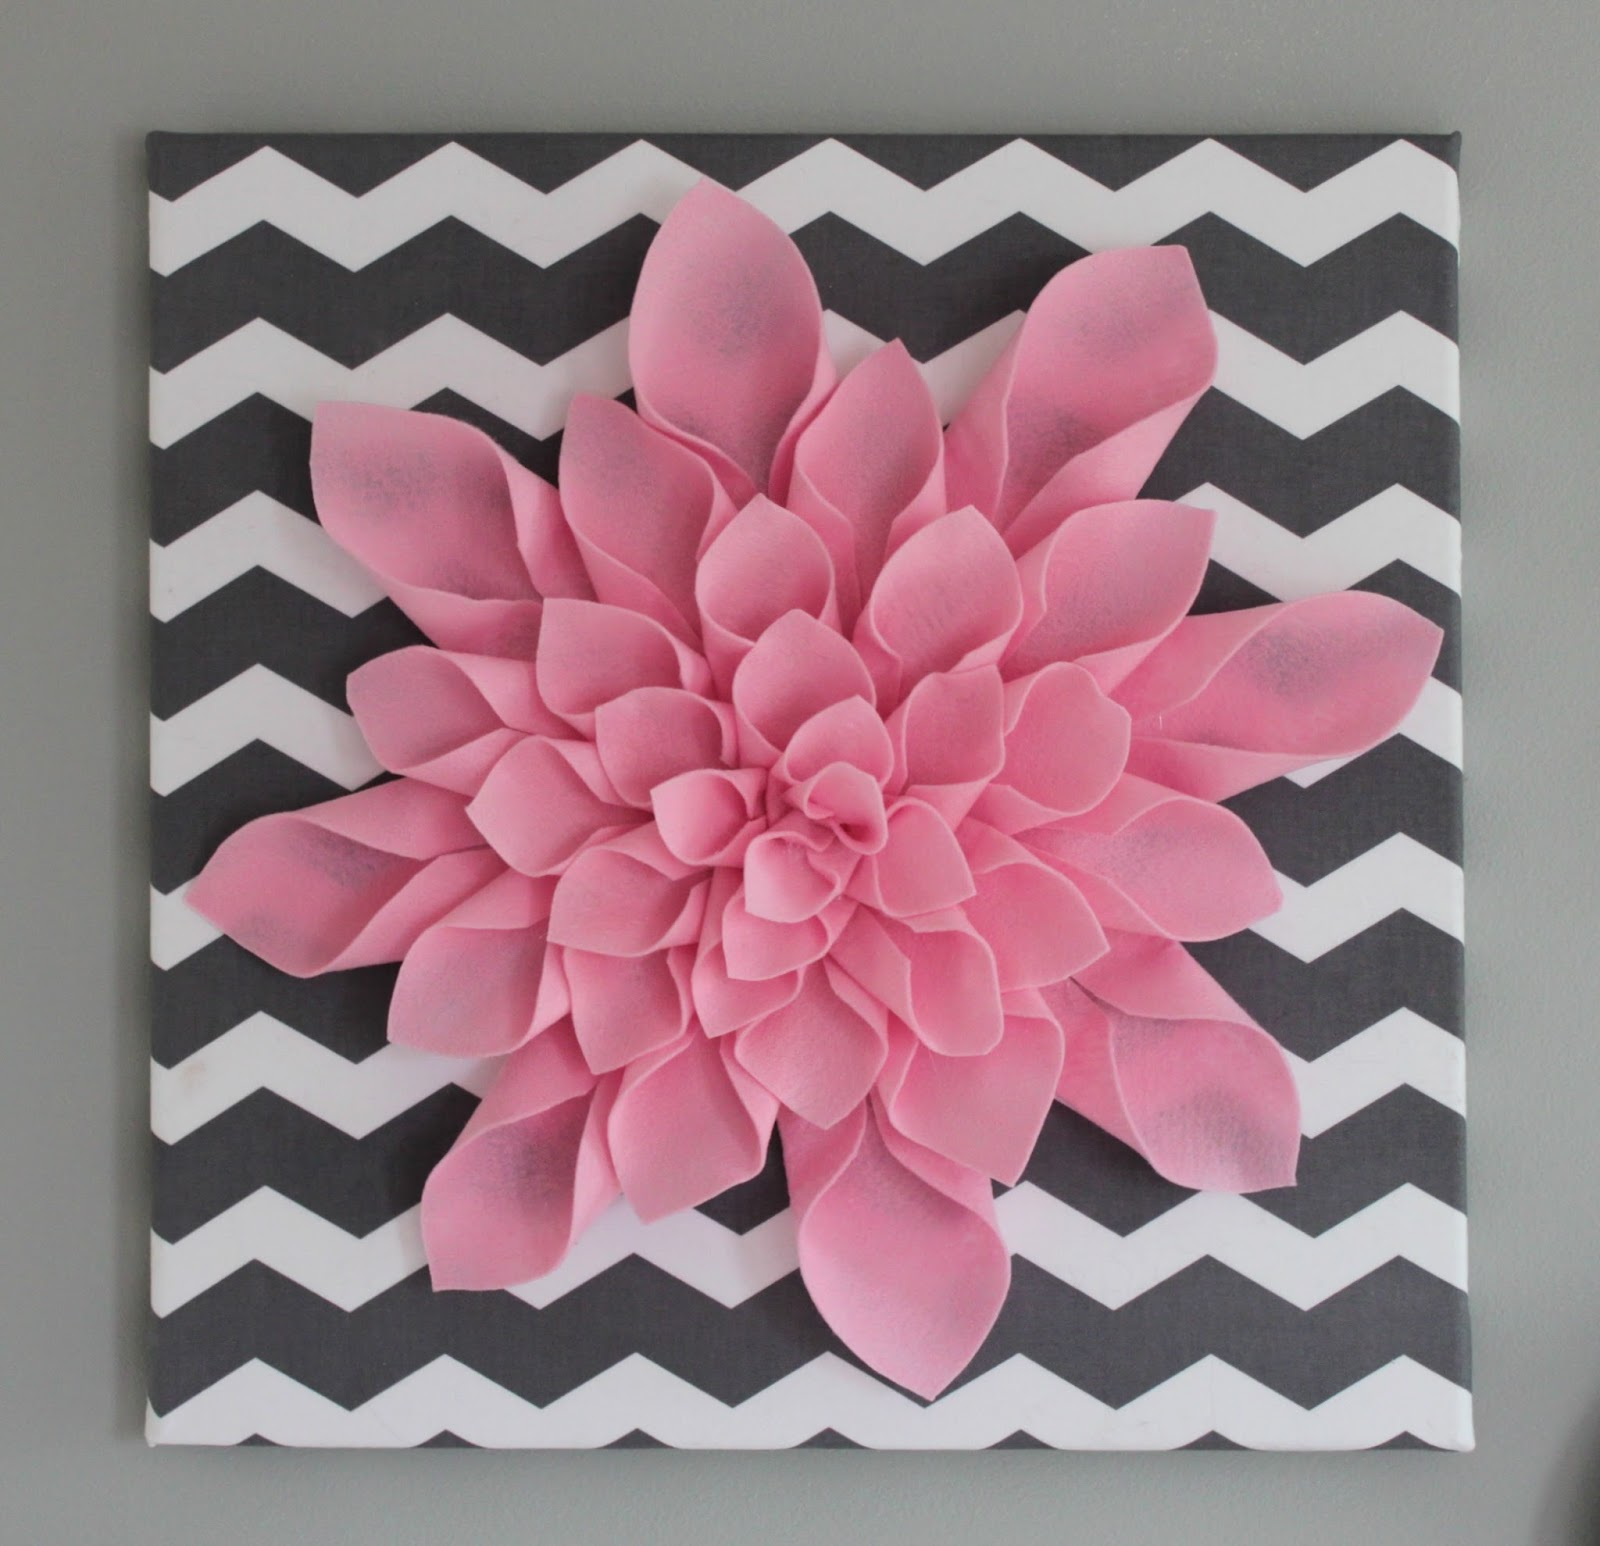 Weihnachtsdeko Aus Küchenrolle All Things Diy Chevron Flower Canvas Art